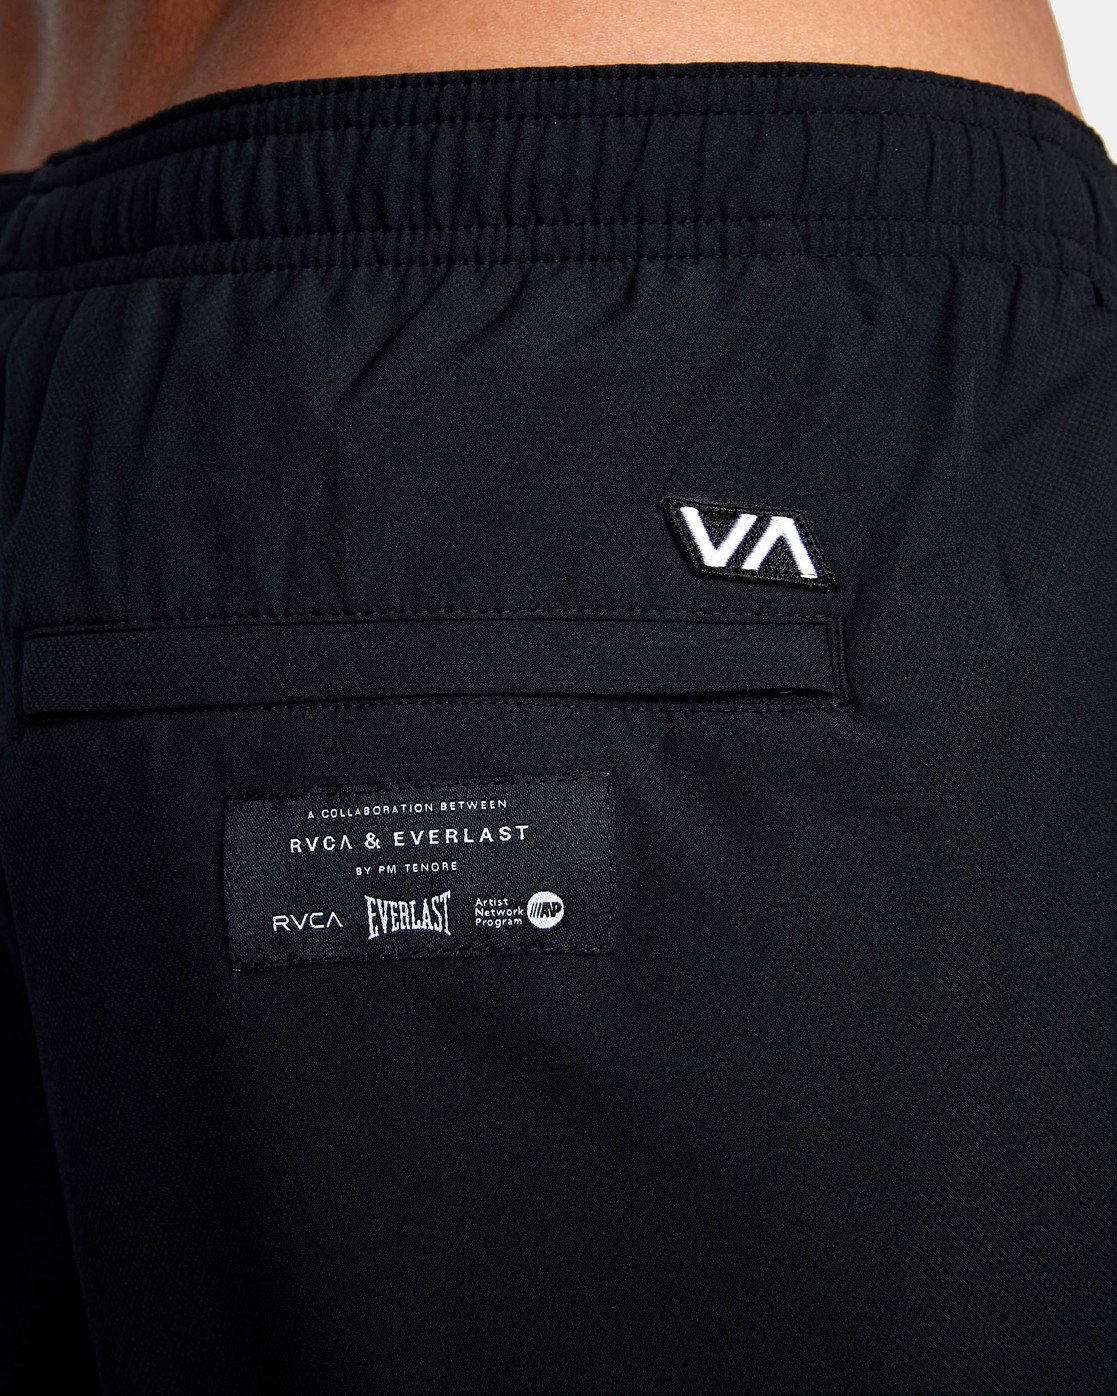 "16 EVERLAST YOGGER IV 17"" WORKOUT SHORT Black V2091REY RVCA"